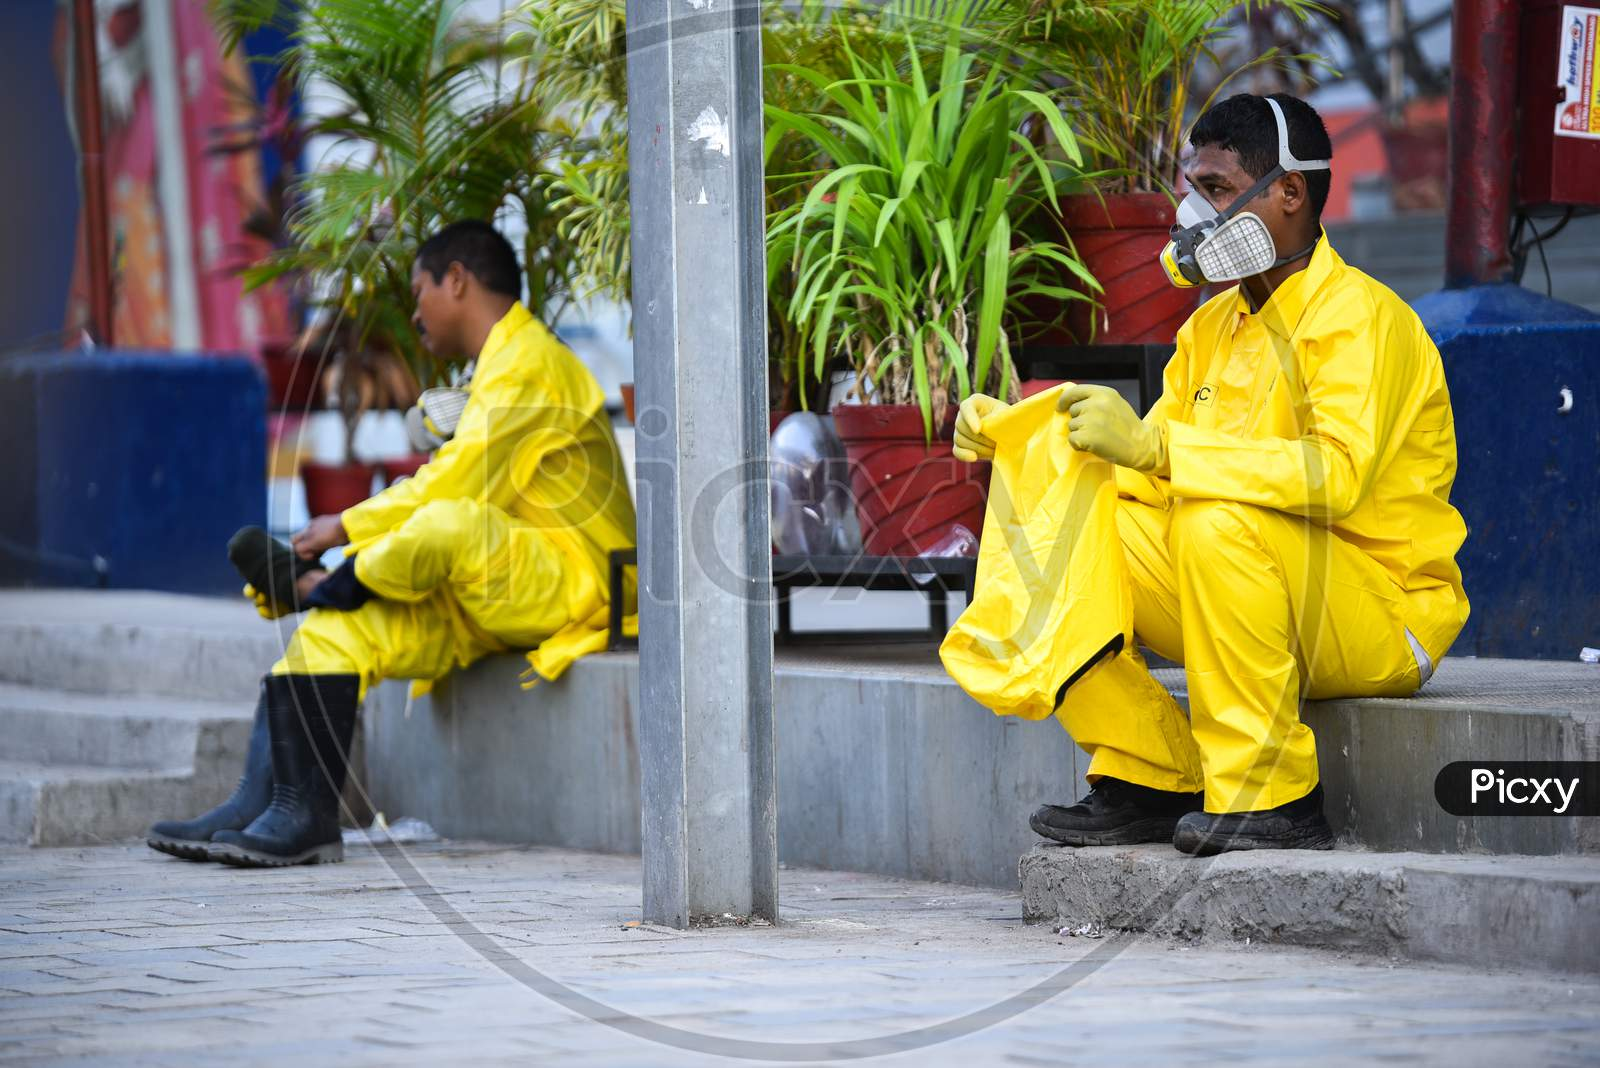 Disaster Response Force(Drf) Team With Full Body Suits Taking Rest After Spraying Disinfectant Solution Across The Hyderabad City To Reduce The Spread Of The Covid-19 Virus Or Coronavirus